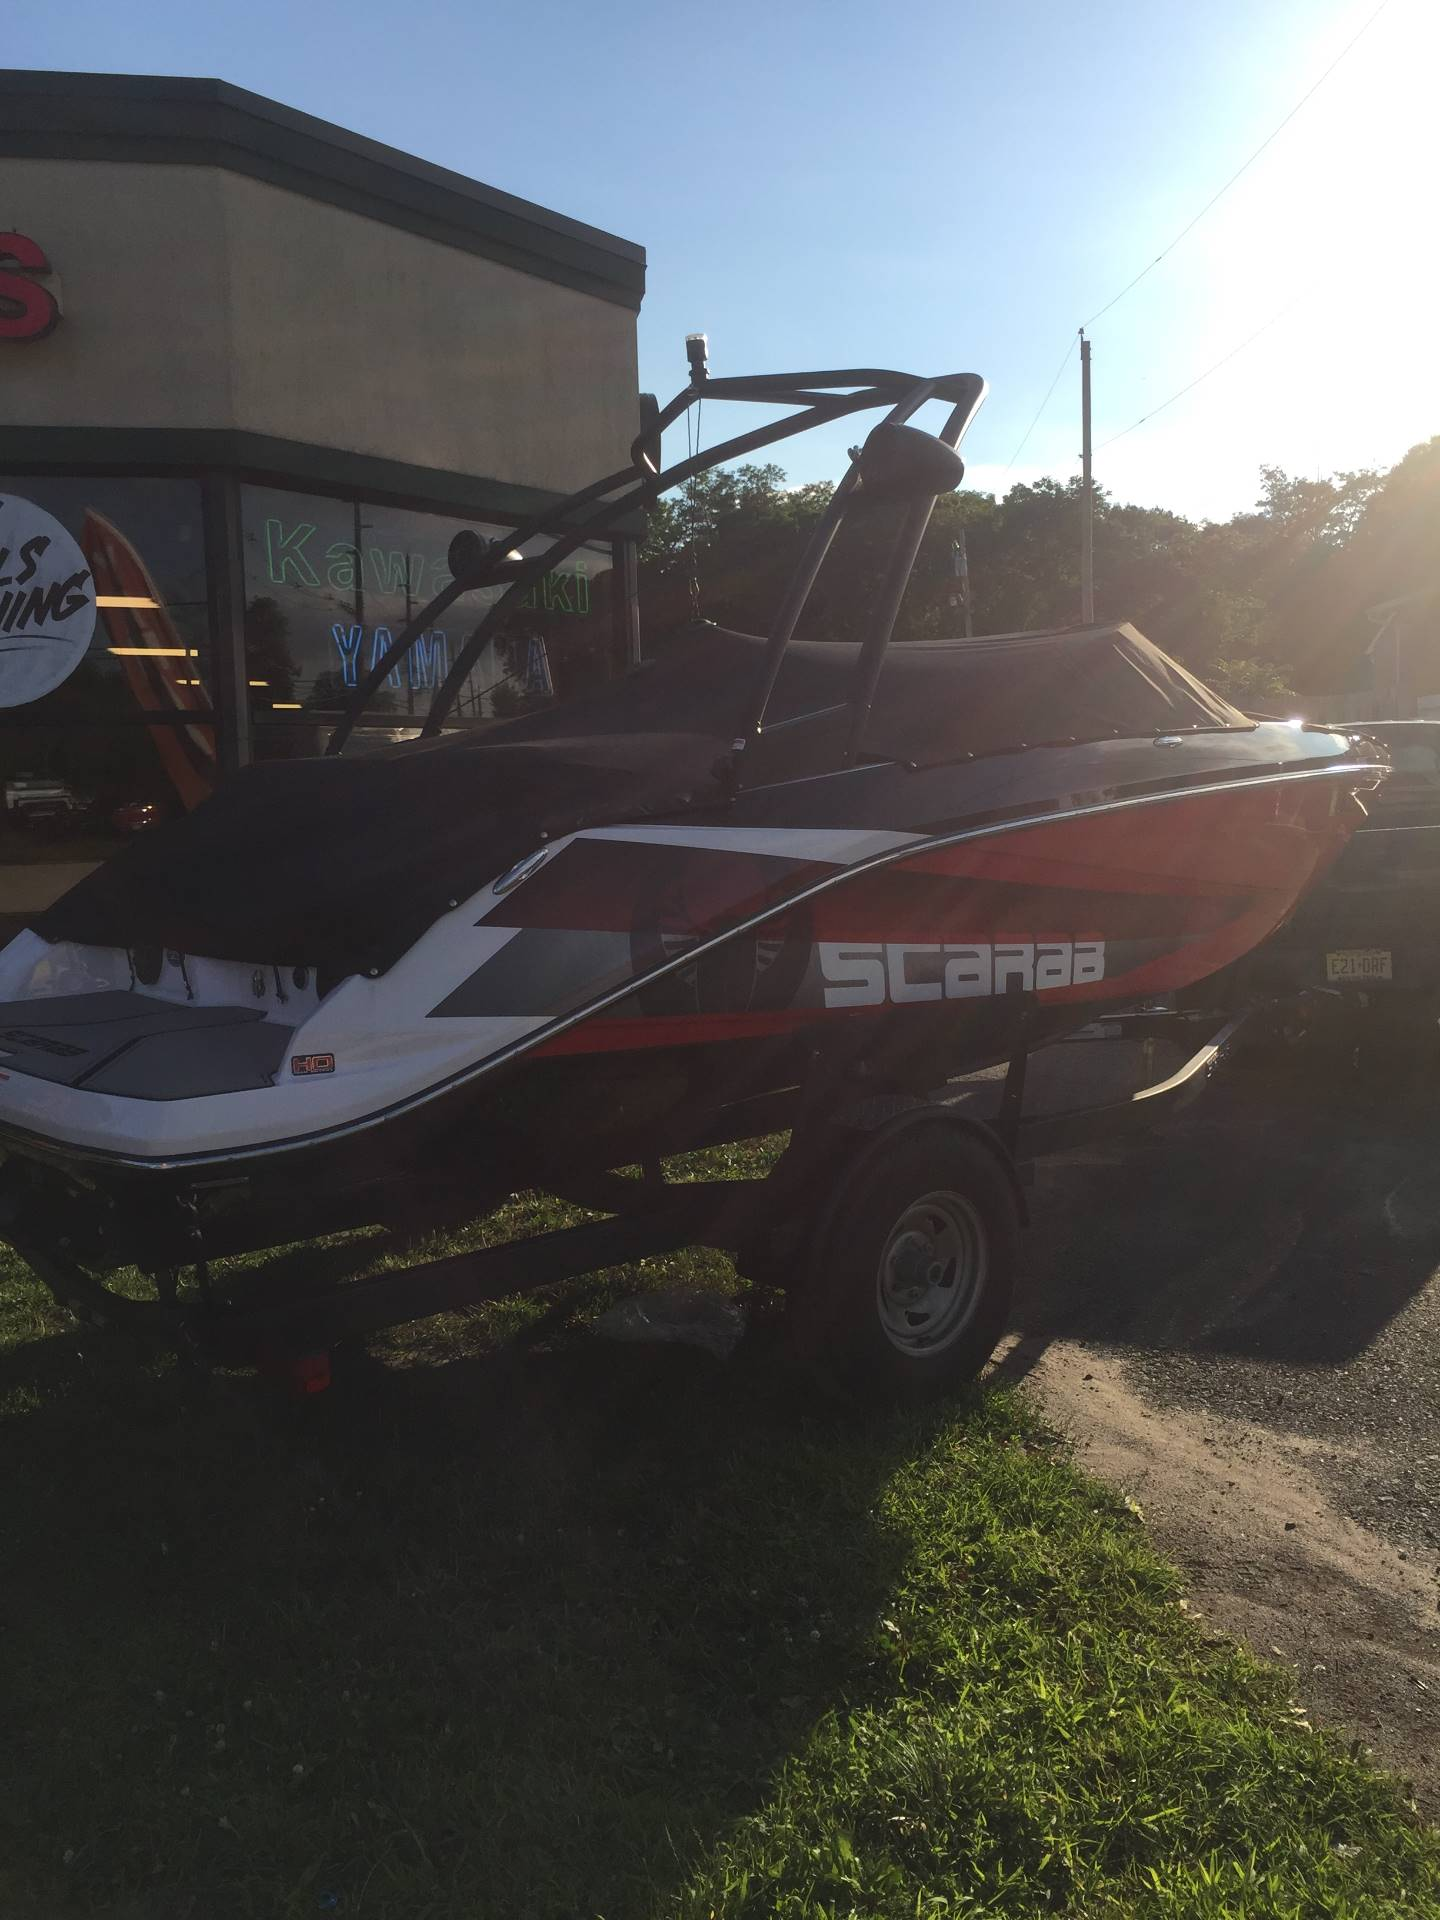 2016 Scarab SCARAB 195HO in Middletown, New Jersey